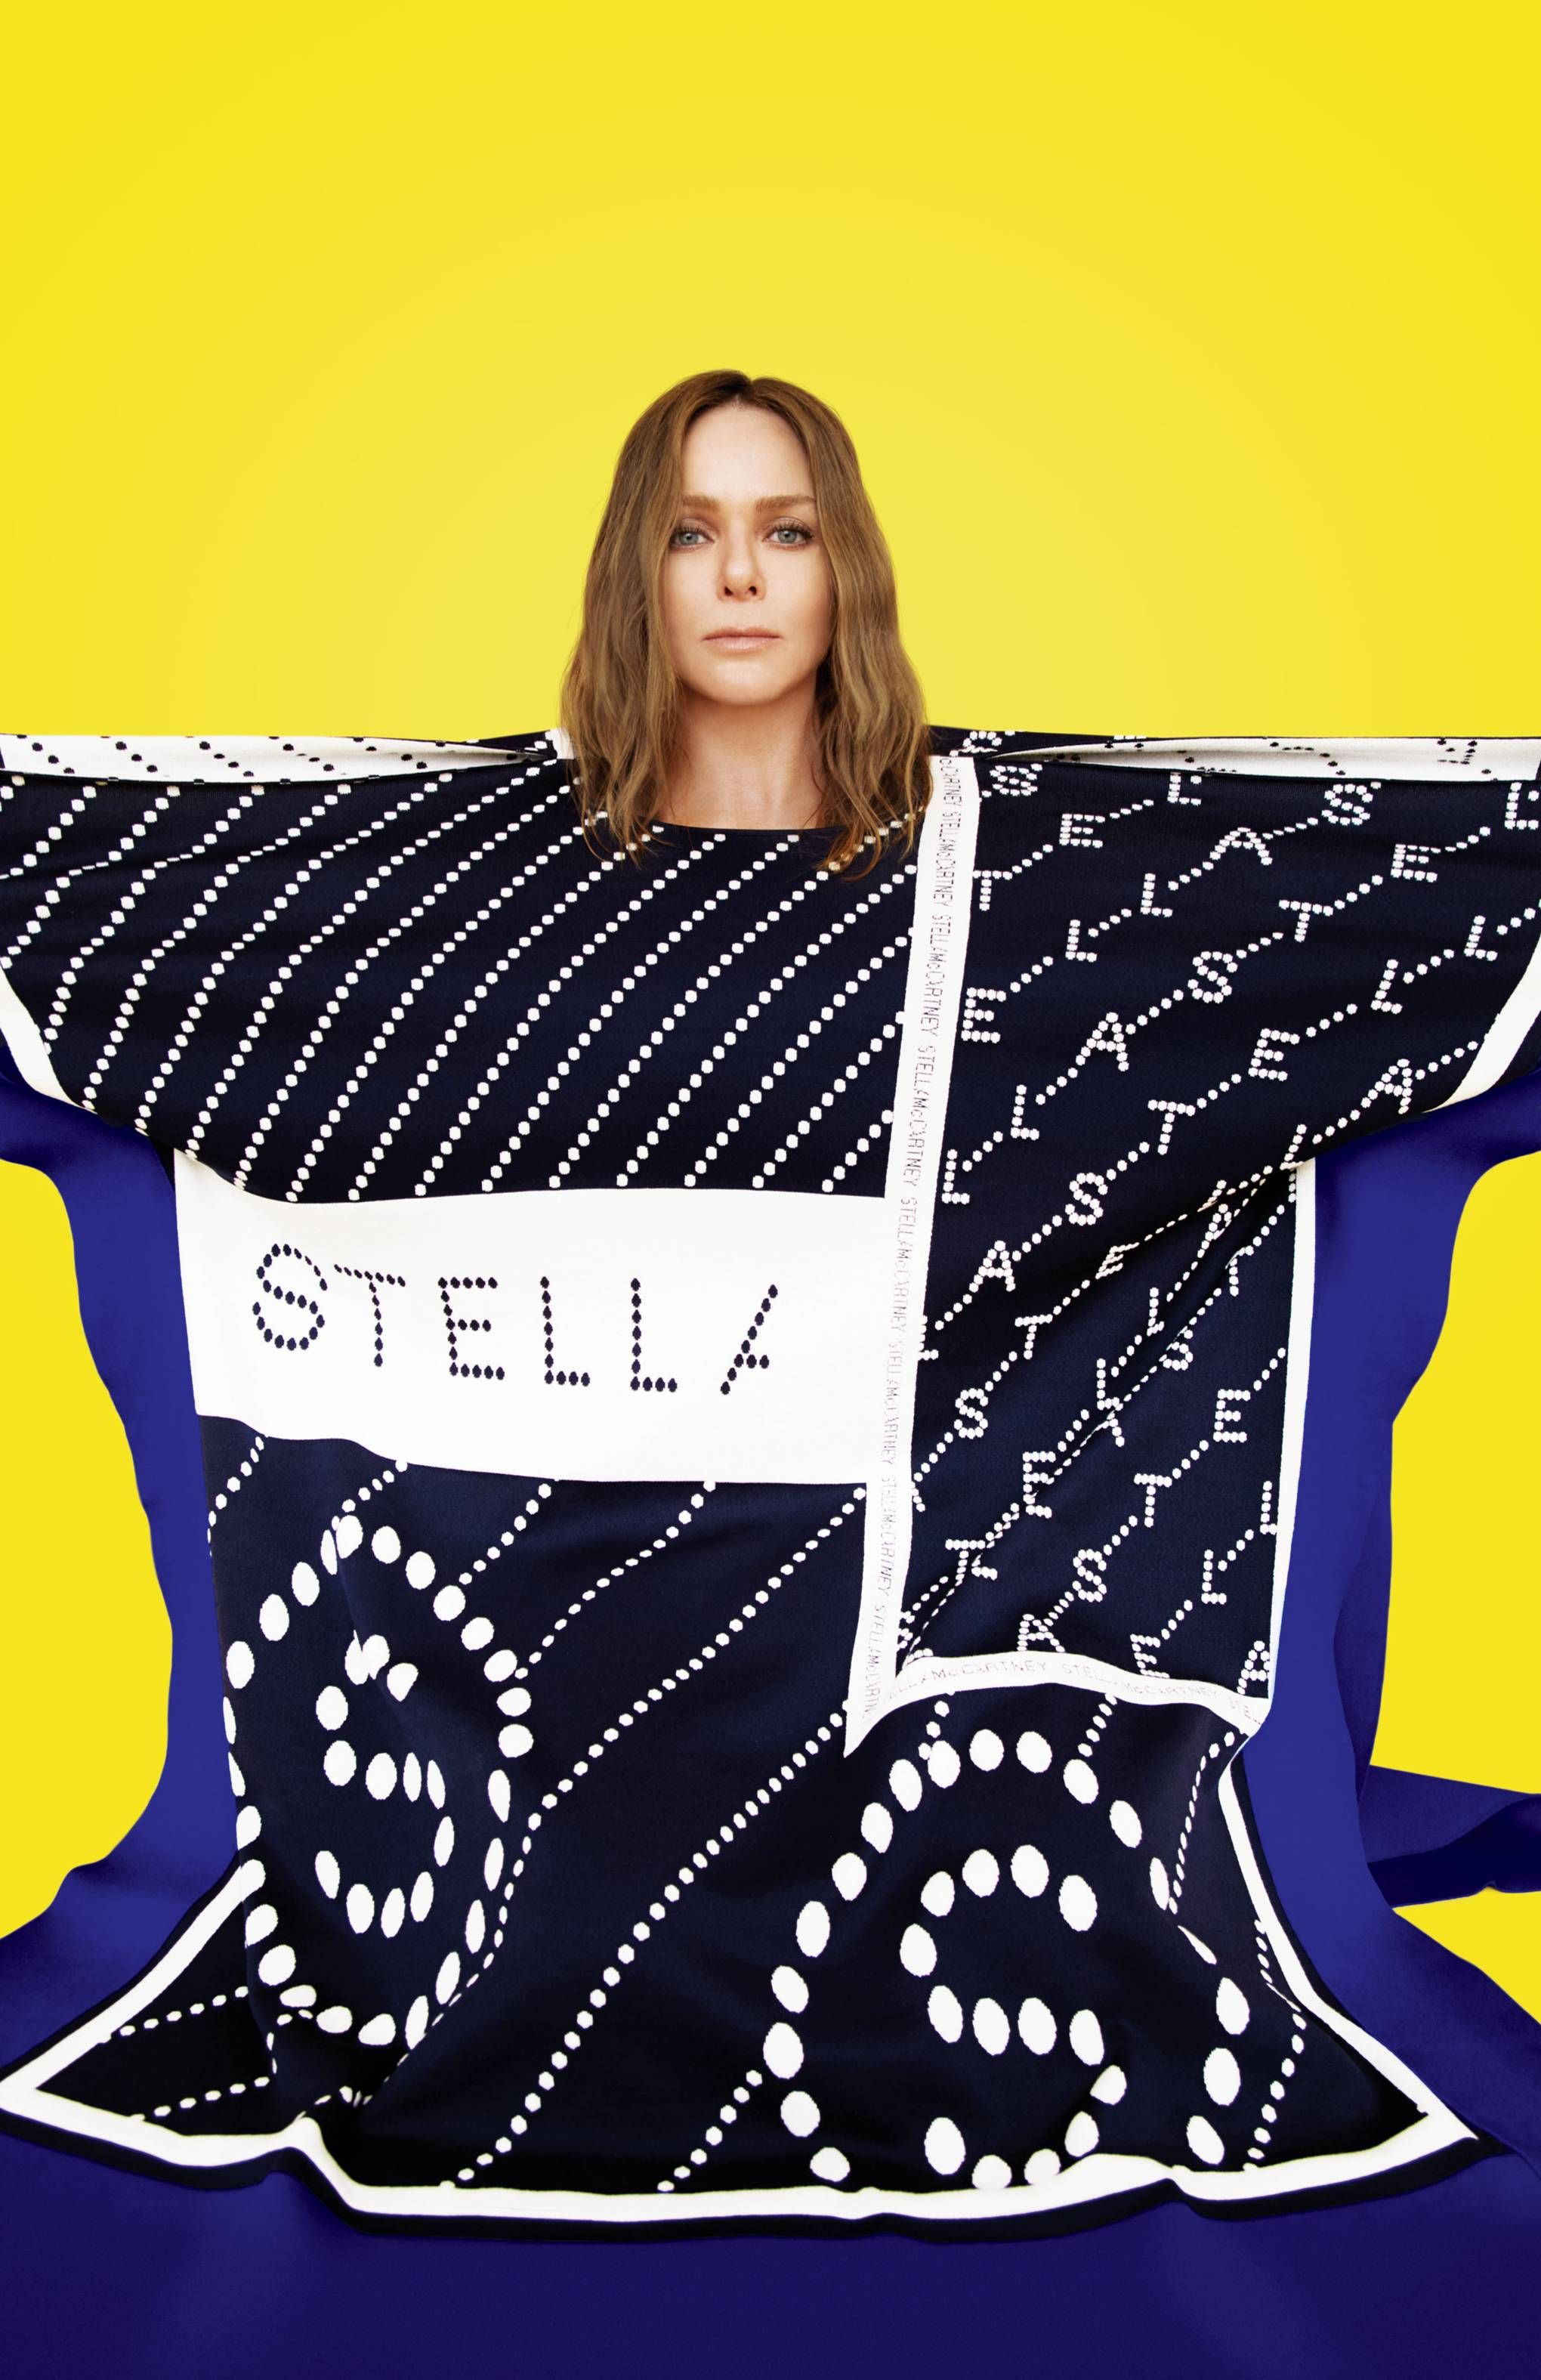 d500ae78ab1 Stella McCartney is on a quest to save you from the fashion industry |  WIRED UK